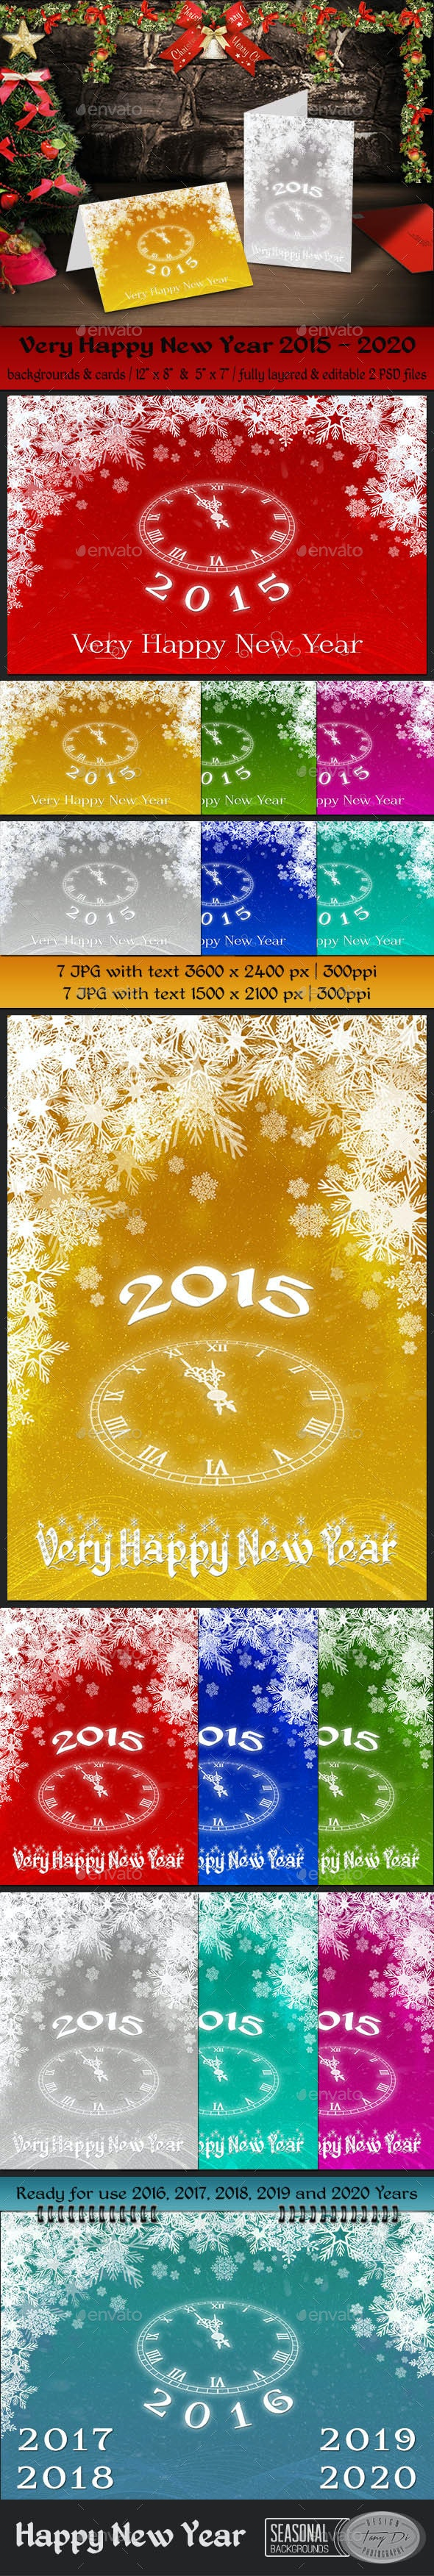 Very Happy New Year - Miscellaneous Backgrounds